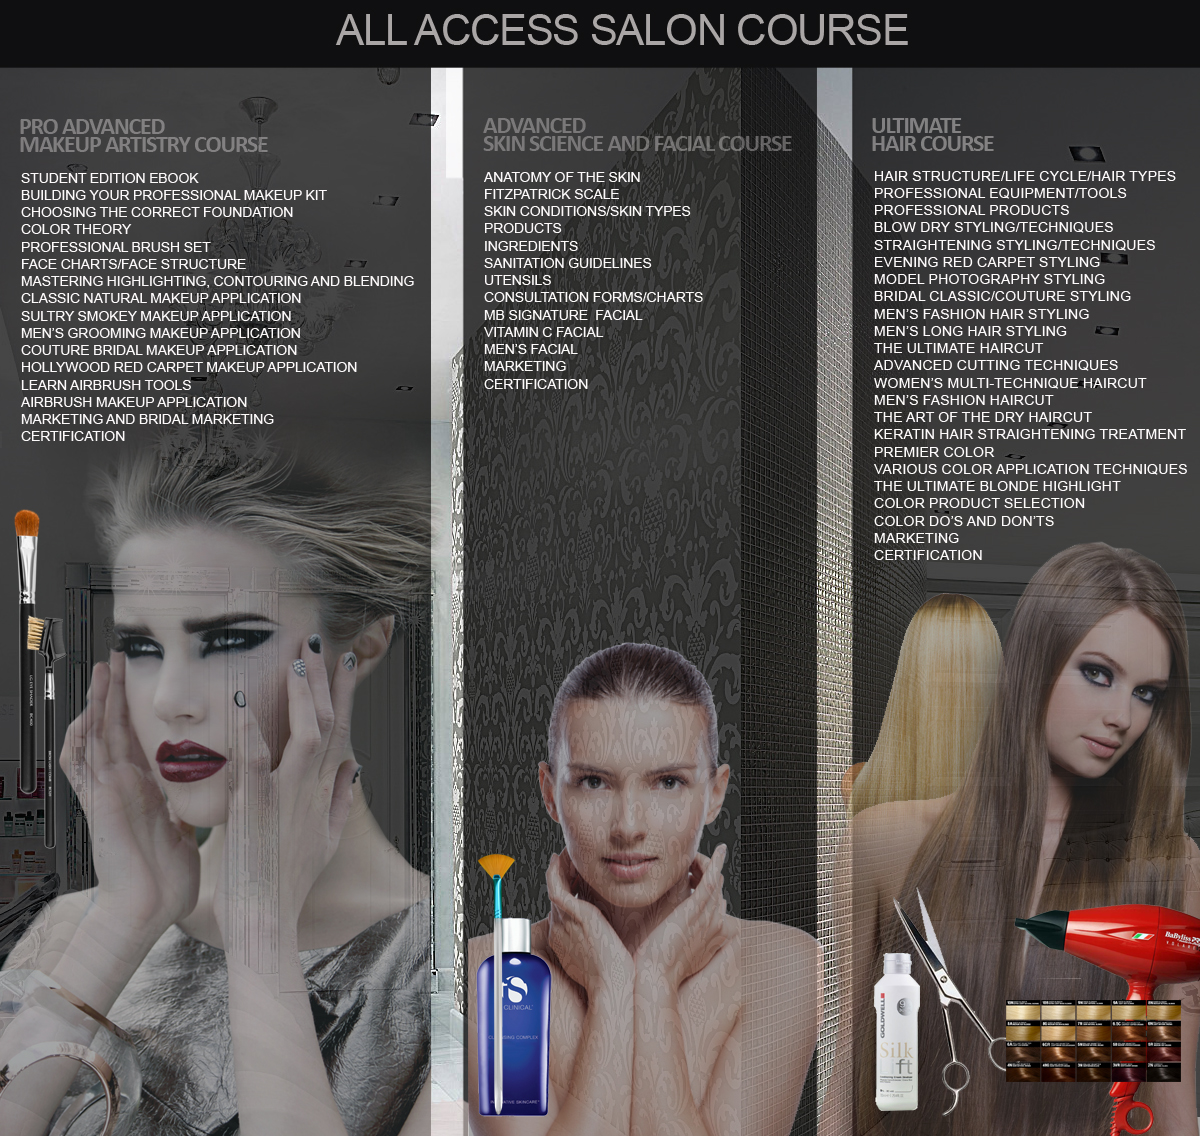 All access salon course